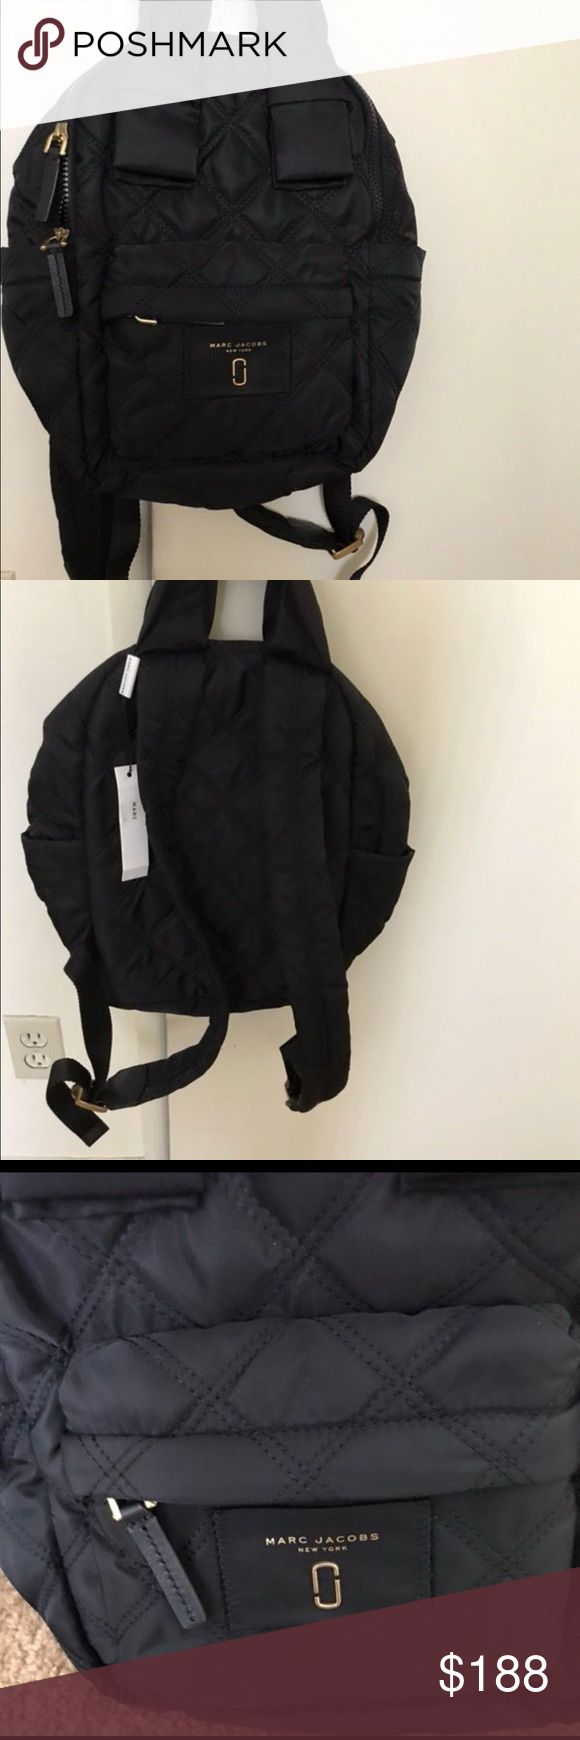 Marc Jacob backpack Brand new without tag nylon backpack Marc Jacobs Bags Backpacks